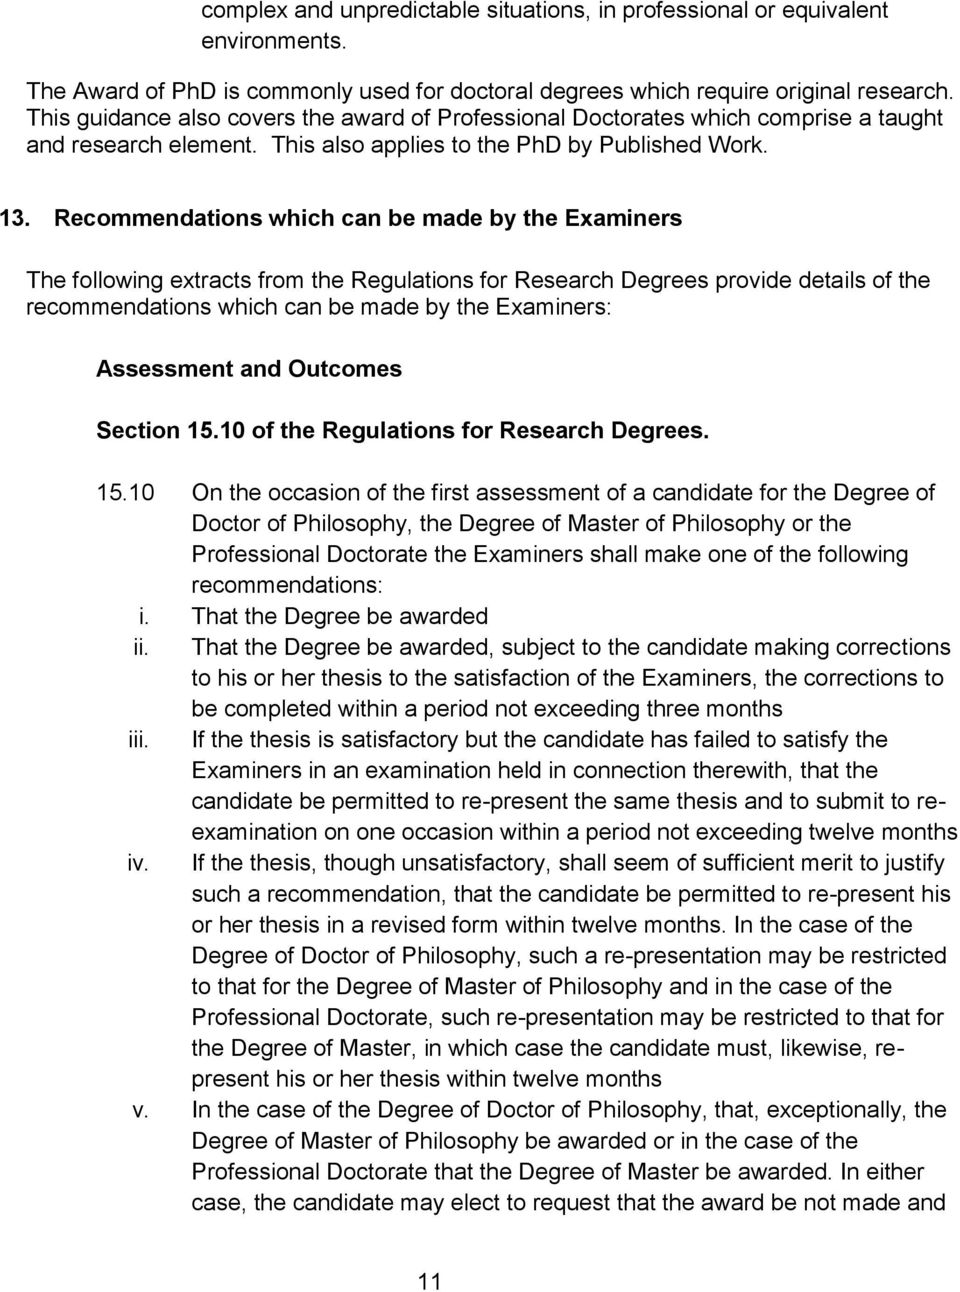 Recommendations which can be made by the Examiners The following extracts from the Regulations for Research Degrees provide details of the recommendations which can be made by the Examiners: